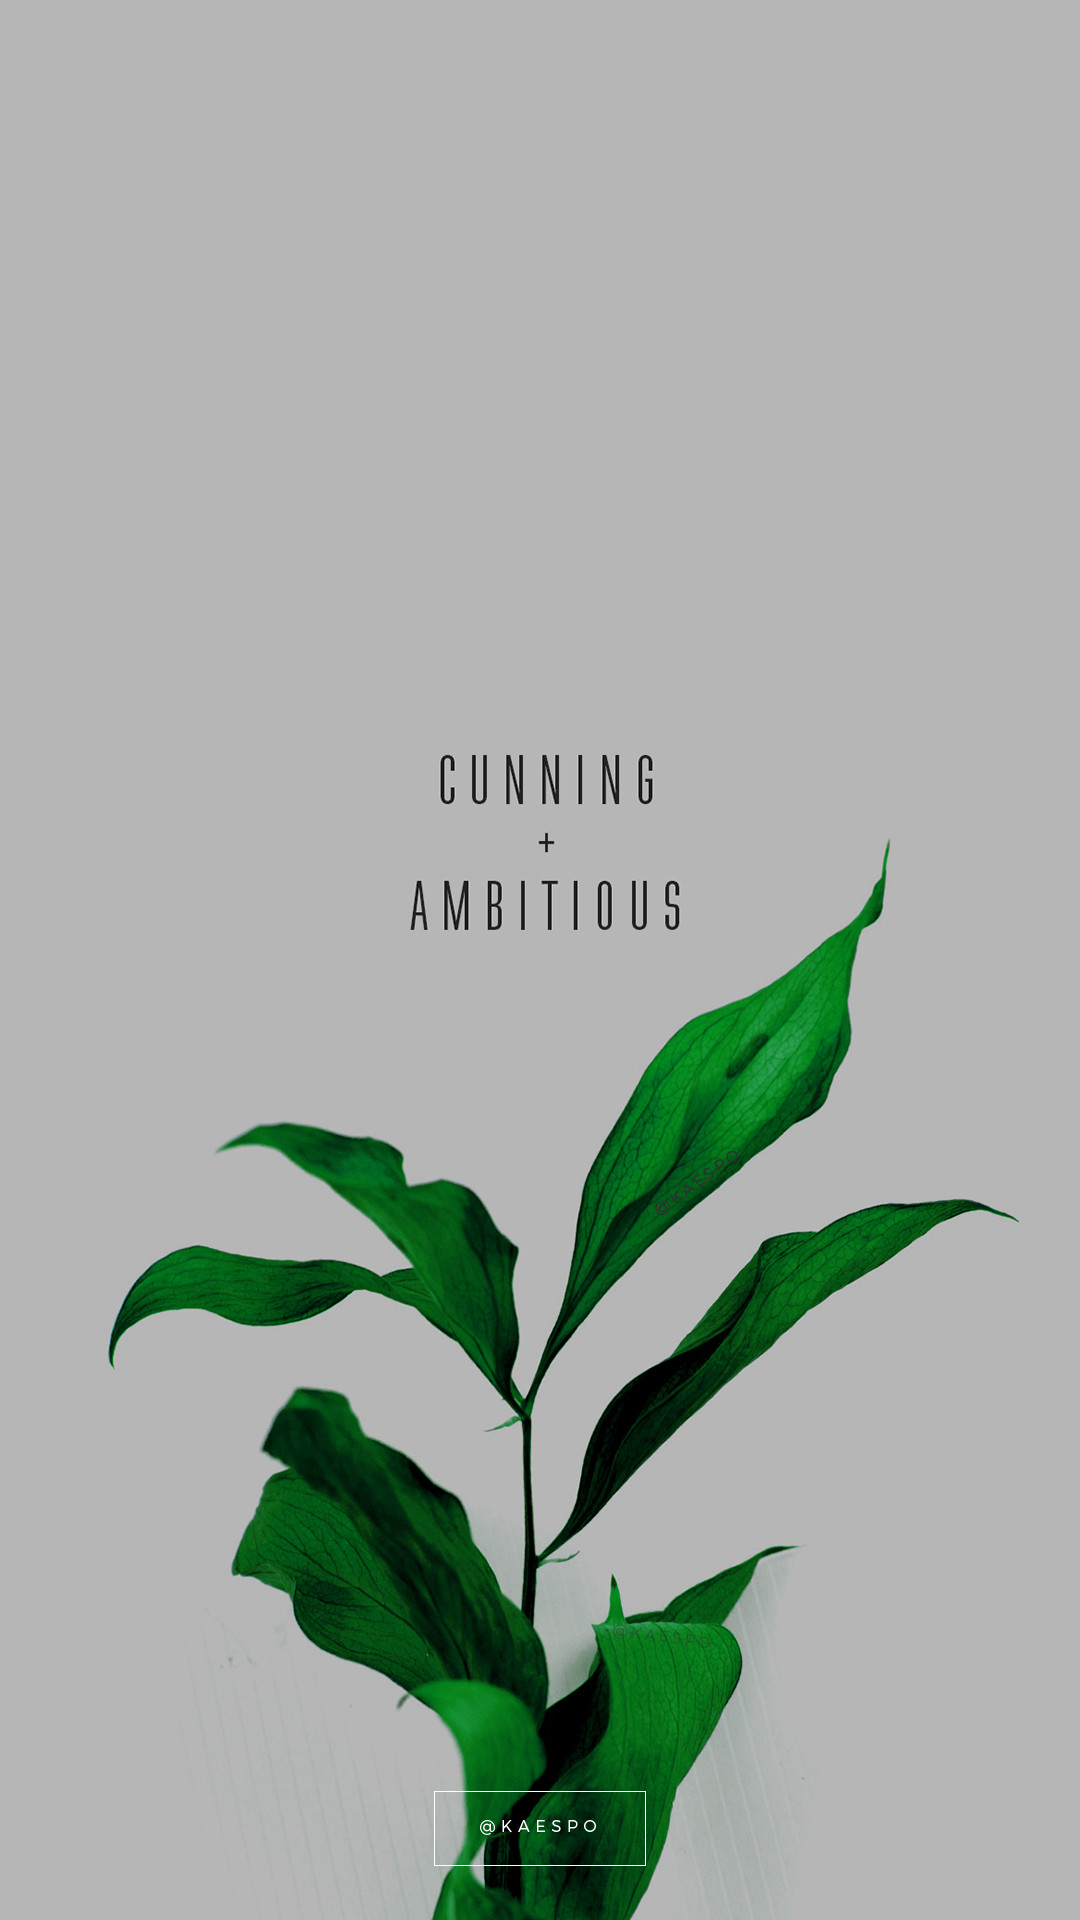 1080x1920 Cunning And Ambitious Slytherin Quote on Green Floral Background by kaespo